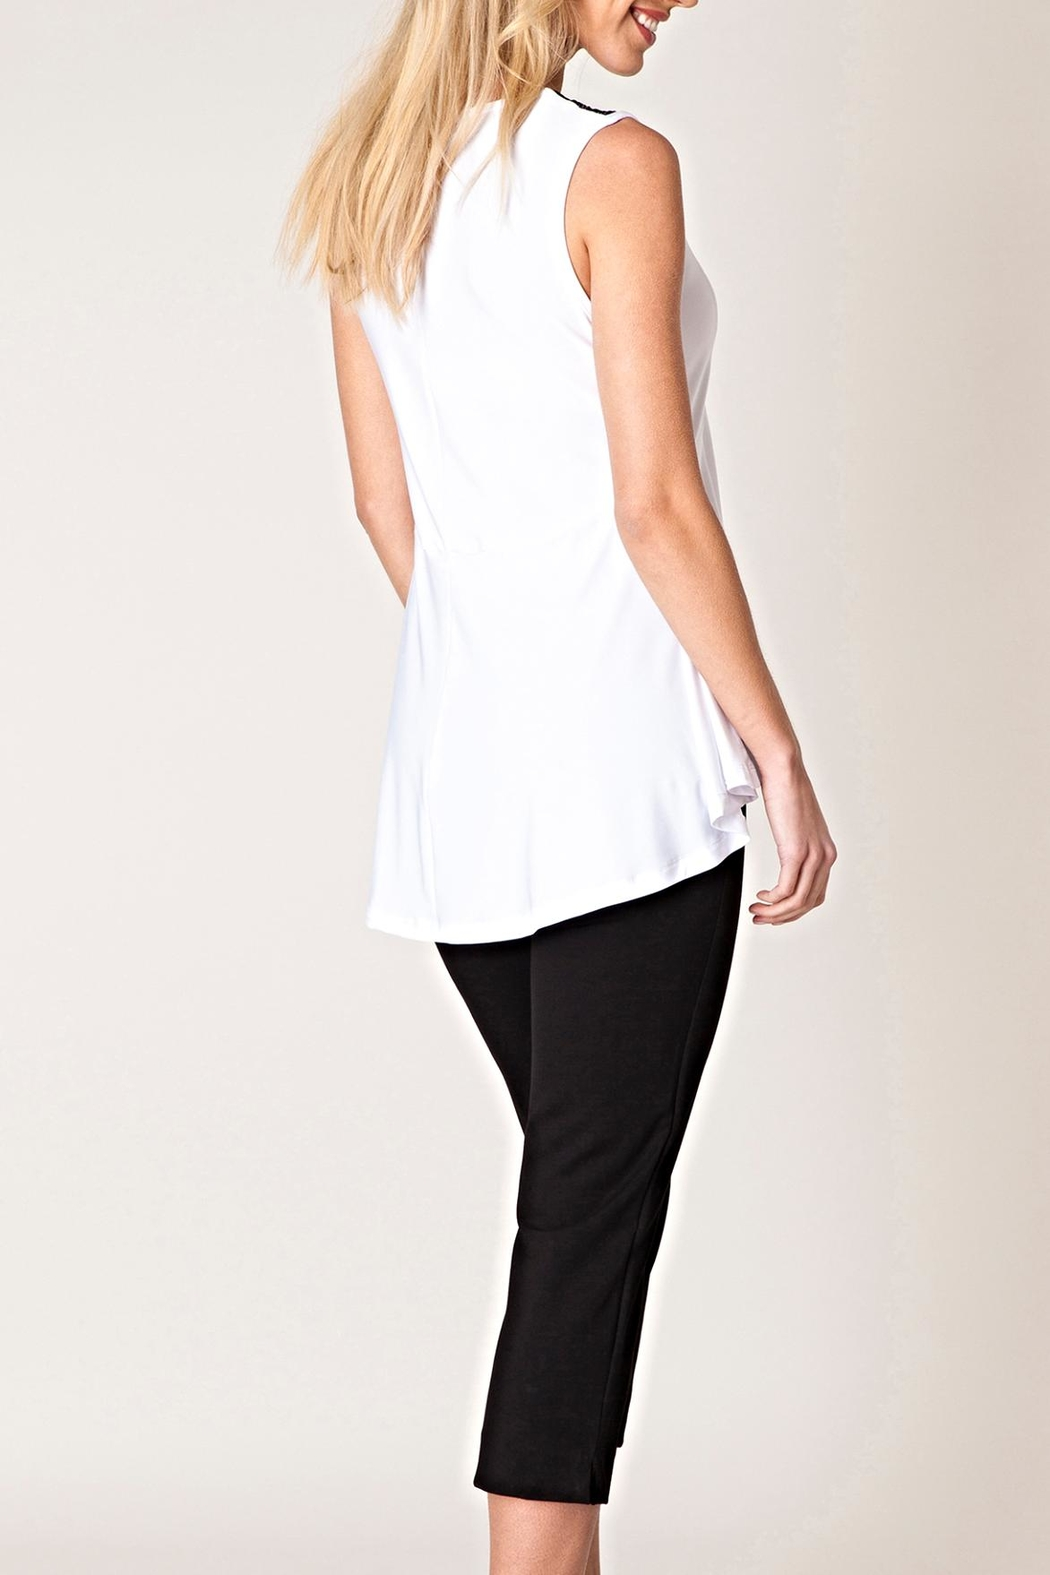 Yest Lace Trim Top - Front Full Image